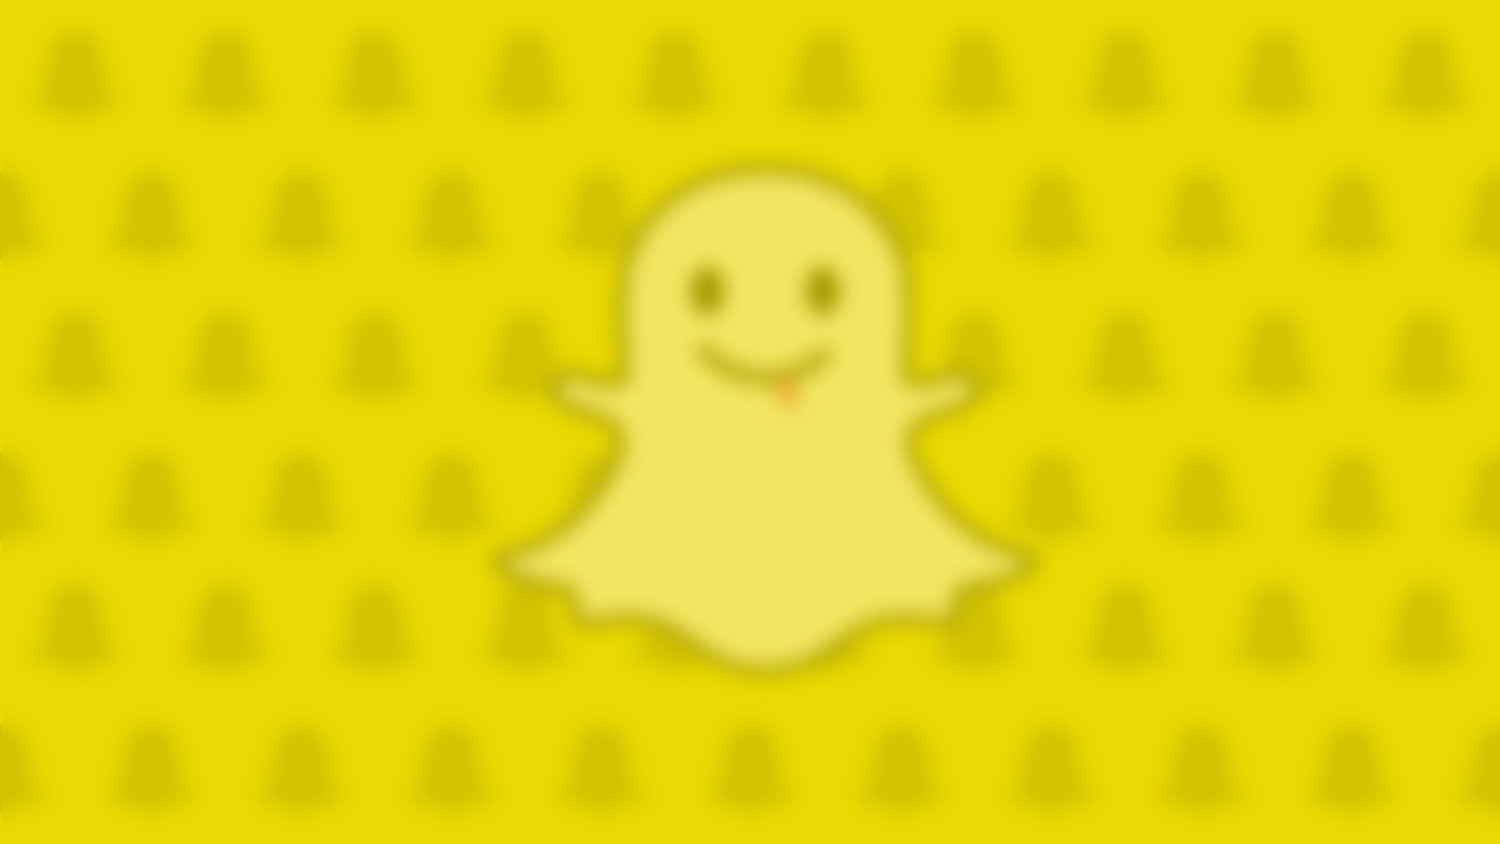 pirater un compte snapchat